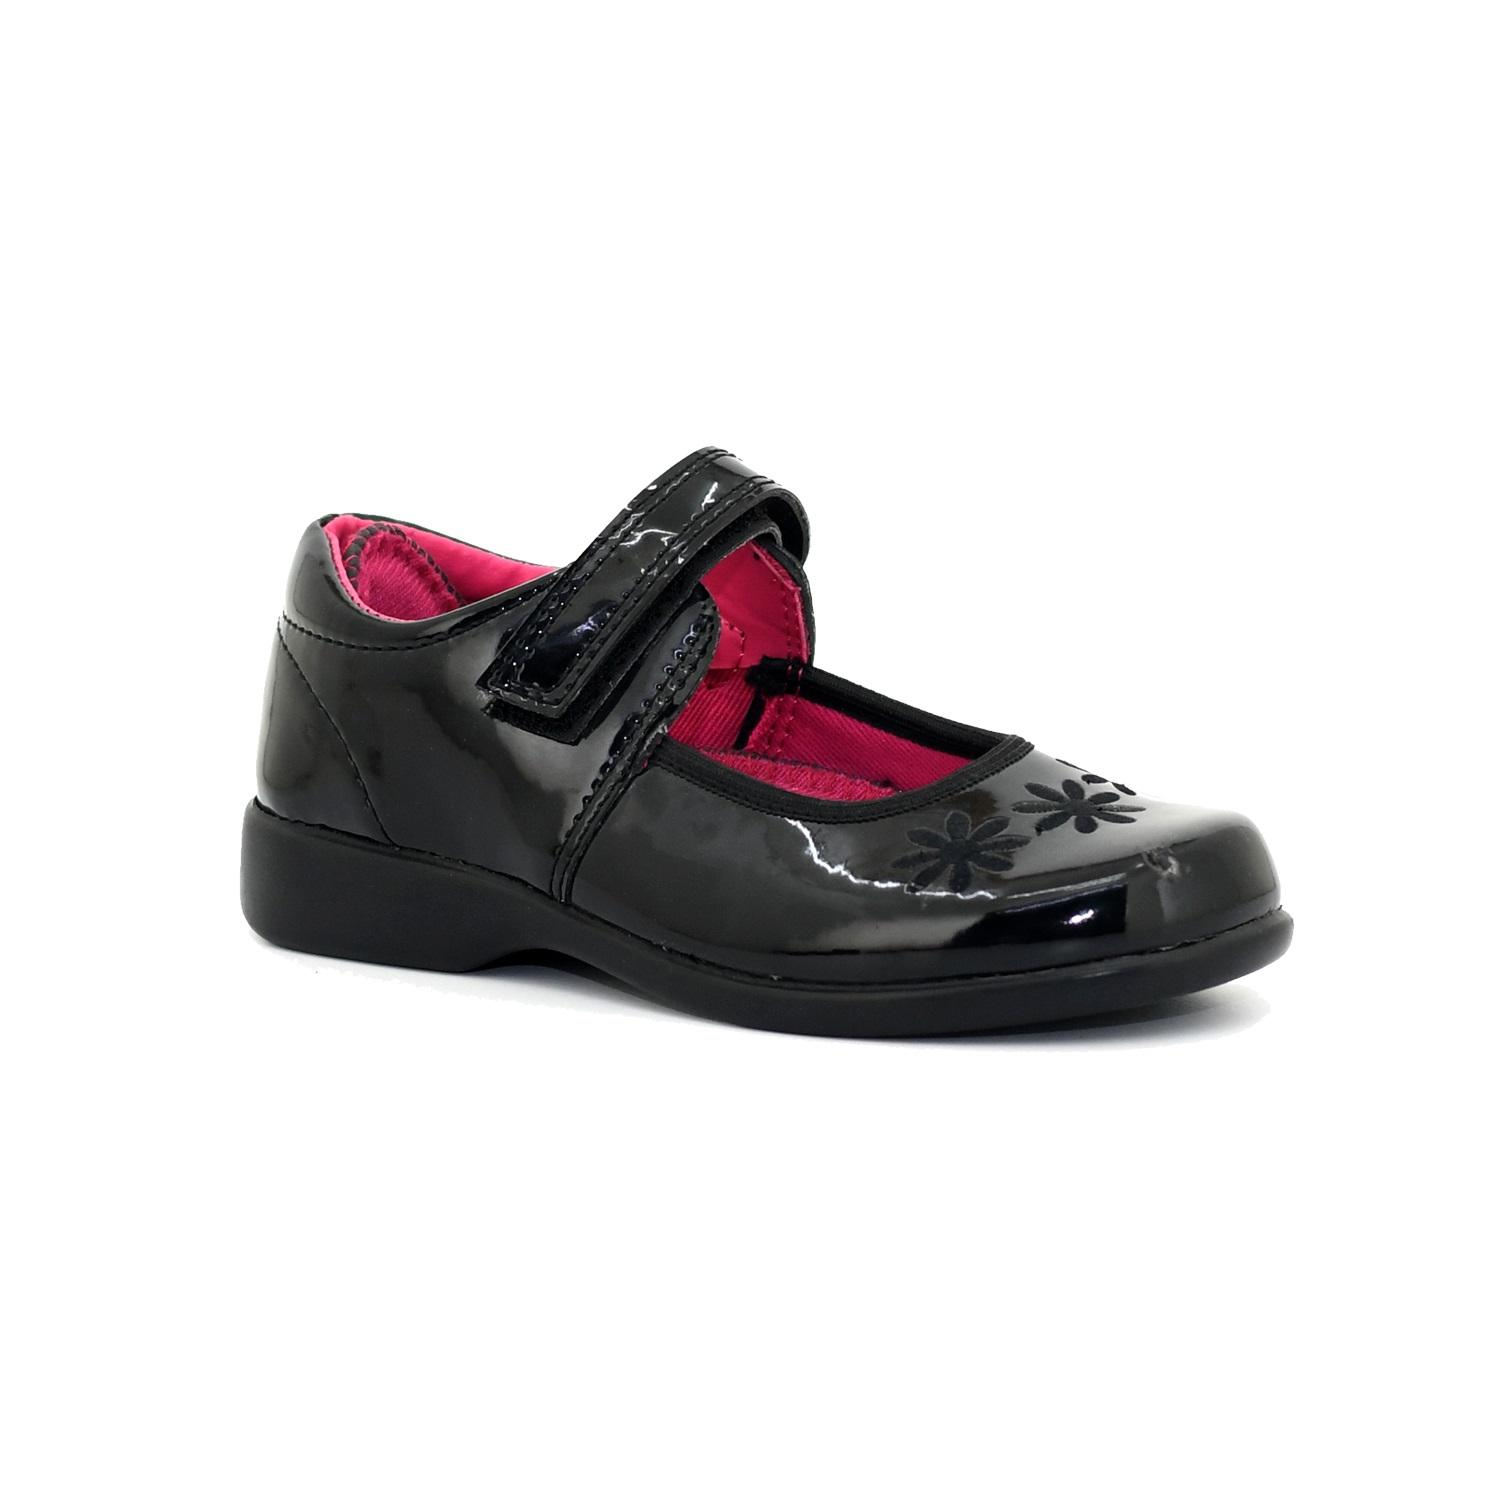 B-First Black School Shoes for Girls